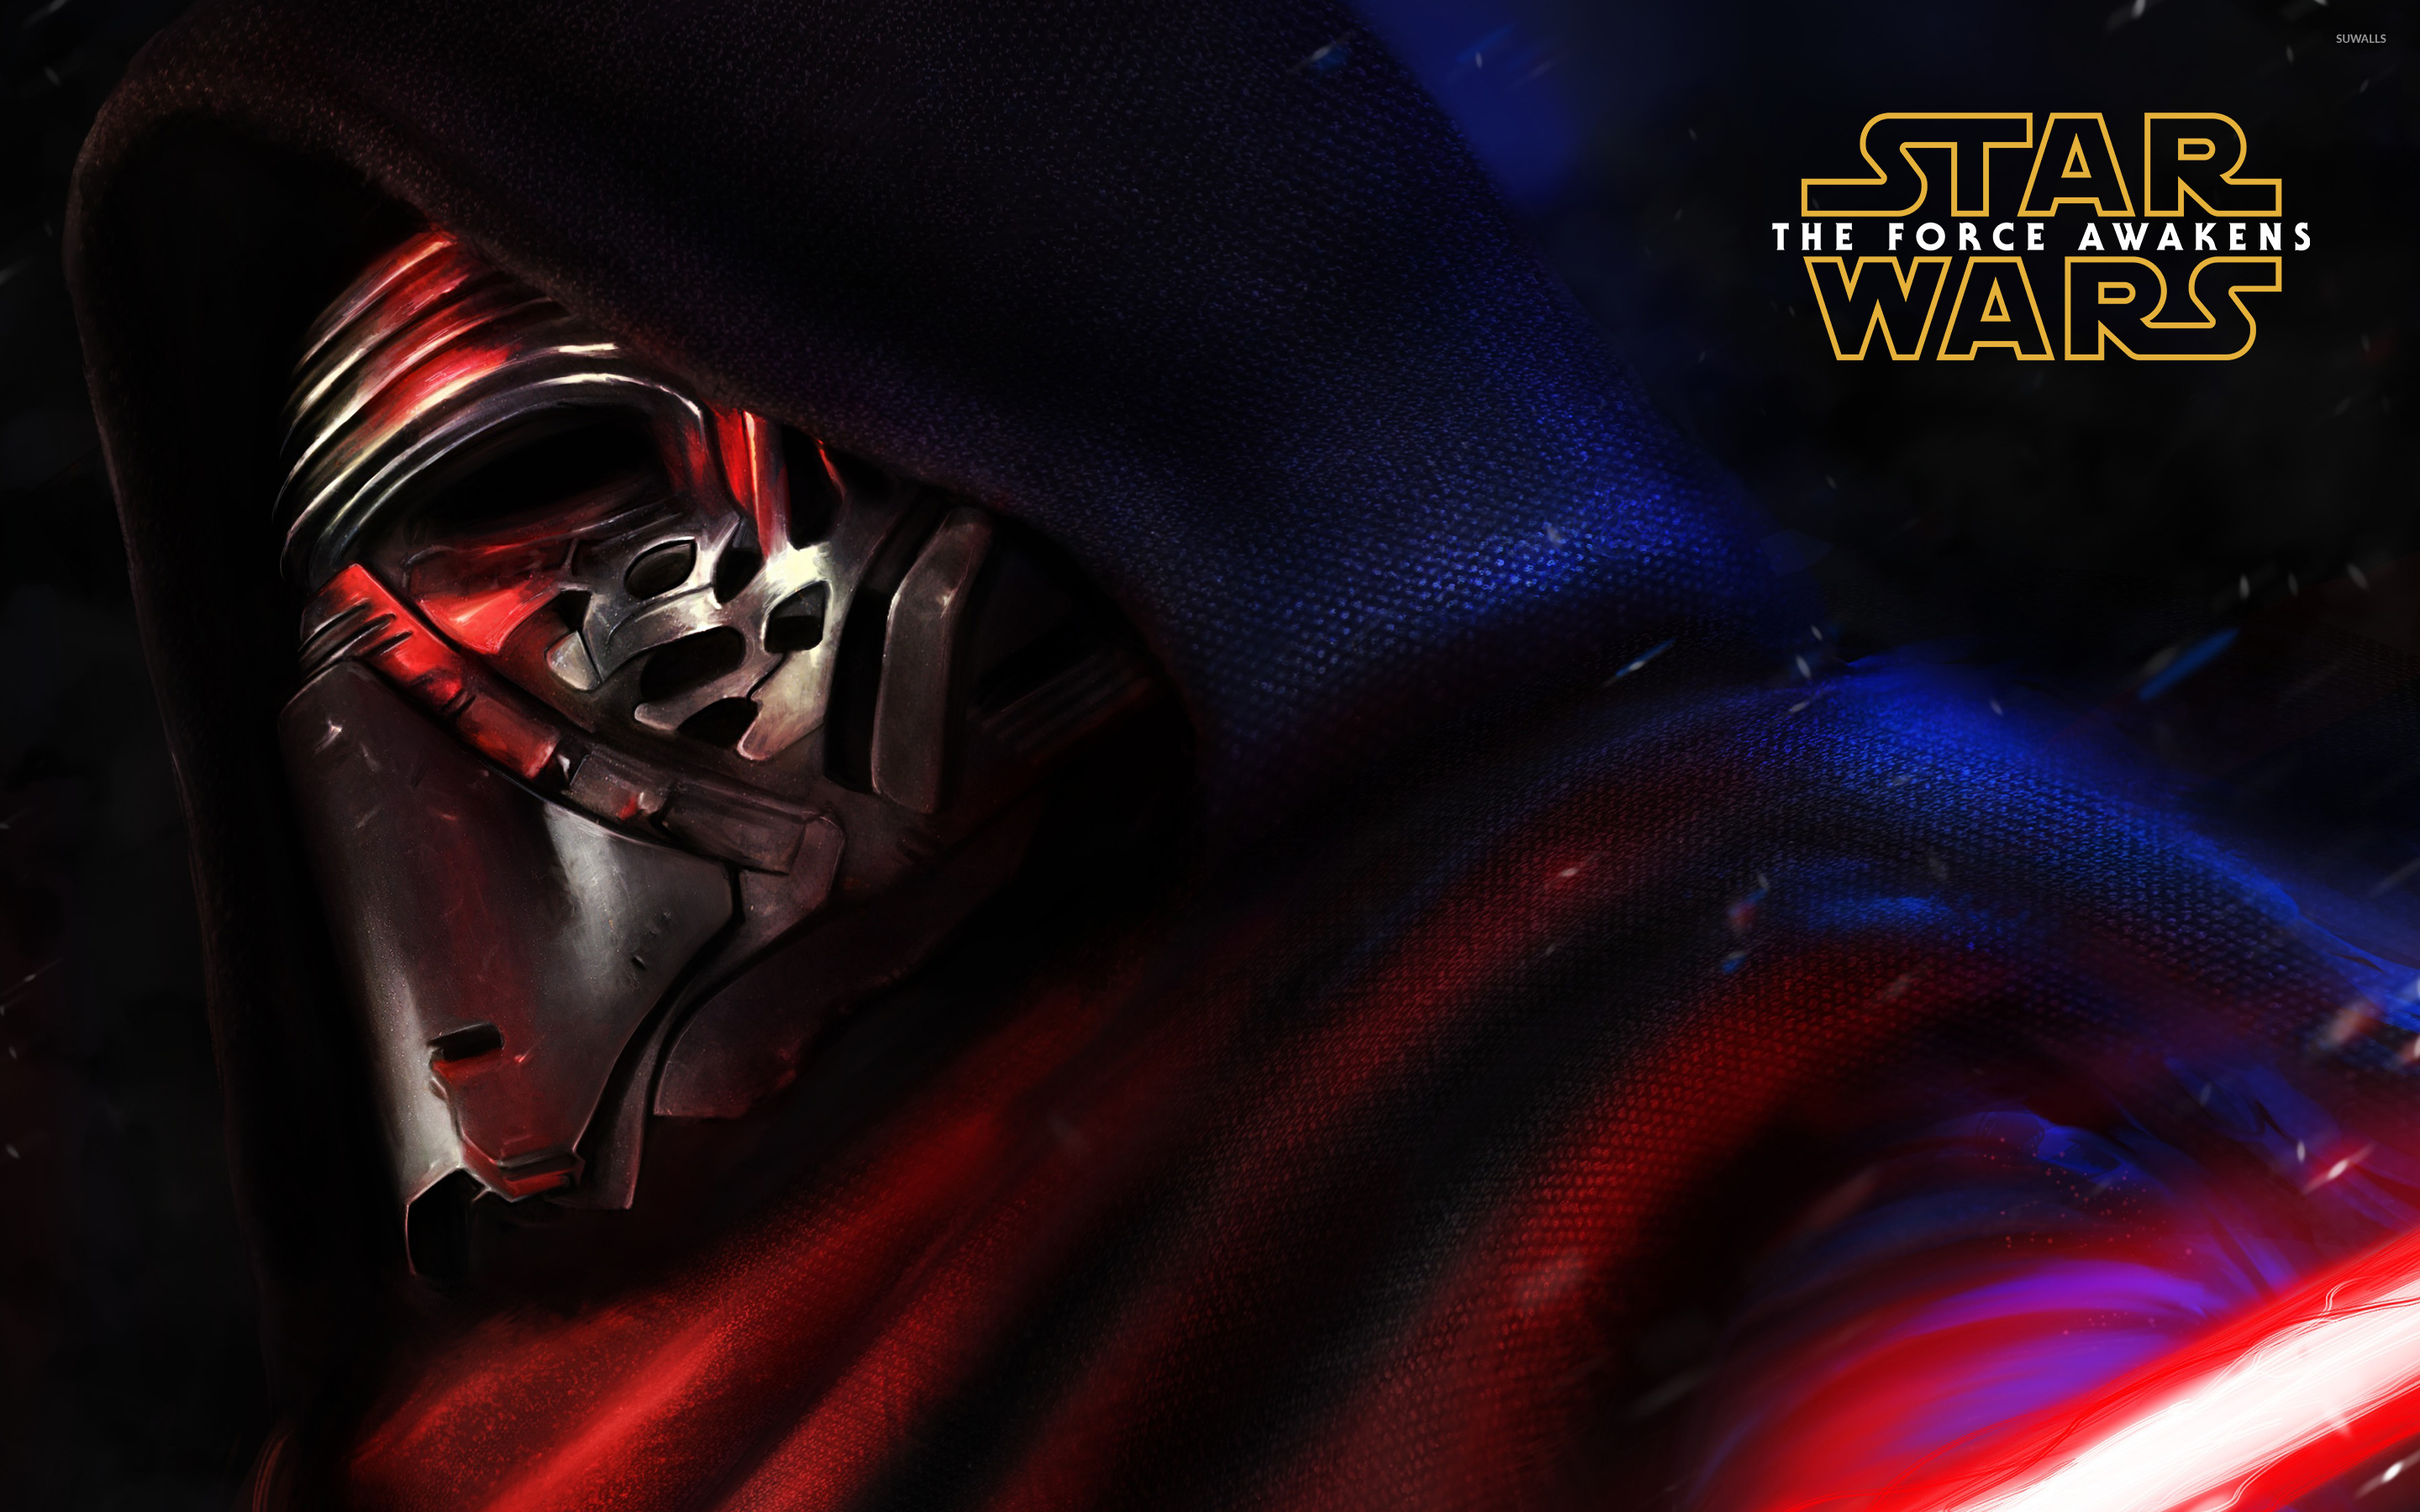 Kylo Ren close up   Star Wars The Force Awakens wallpaper   Movie 1366x768